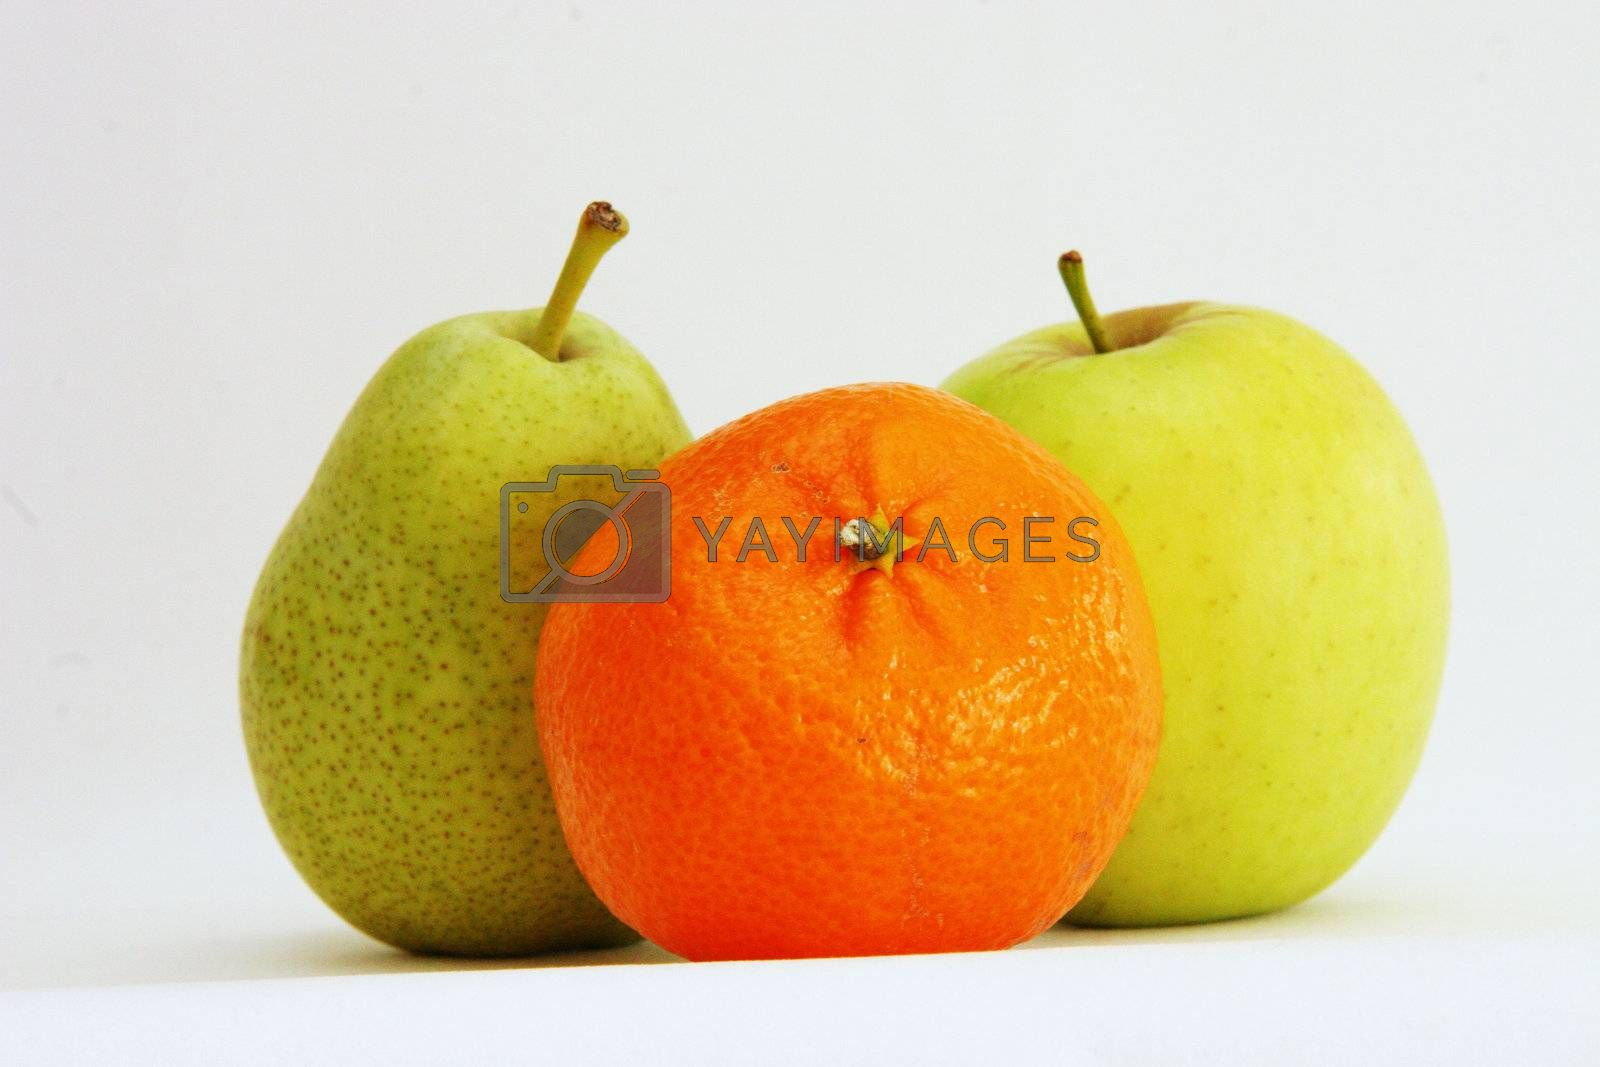 three portions of fresh fruit on a light background